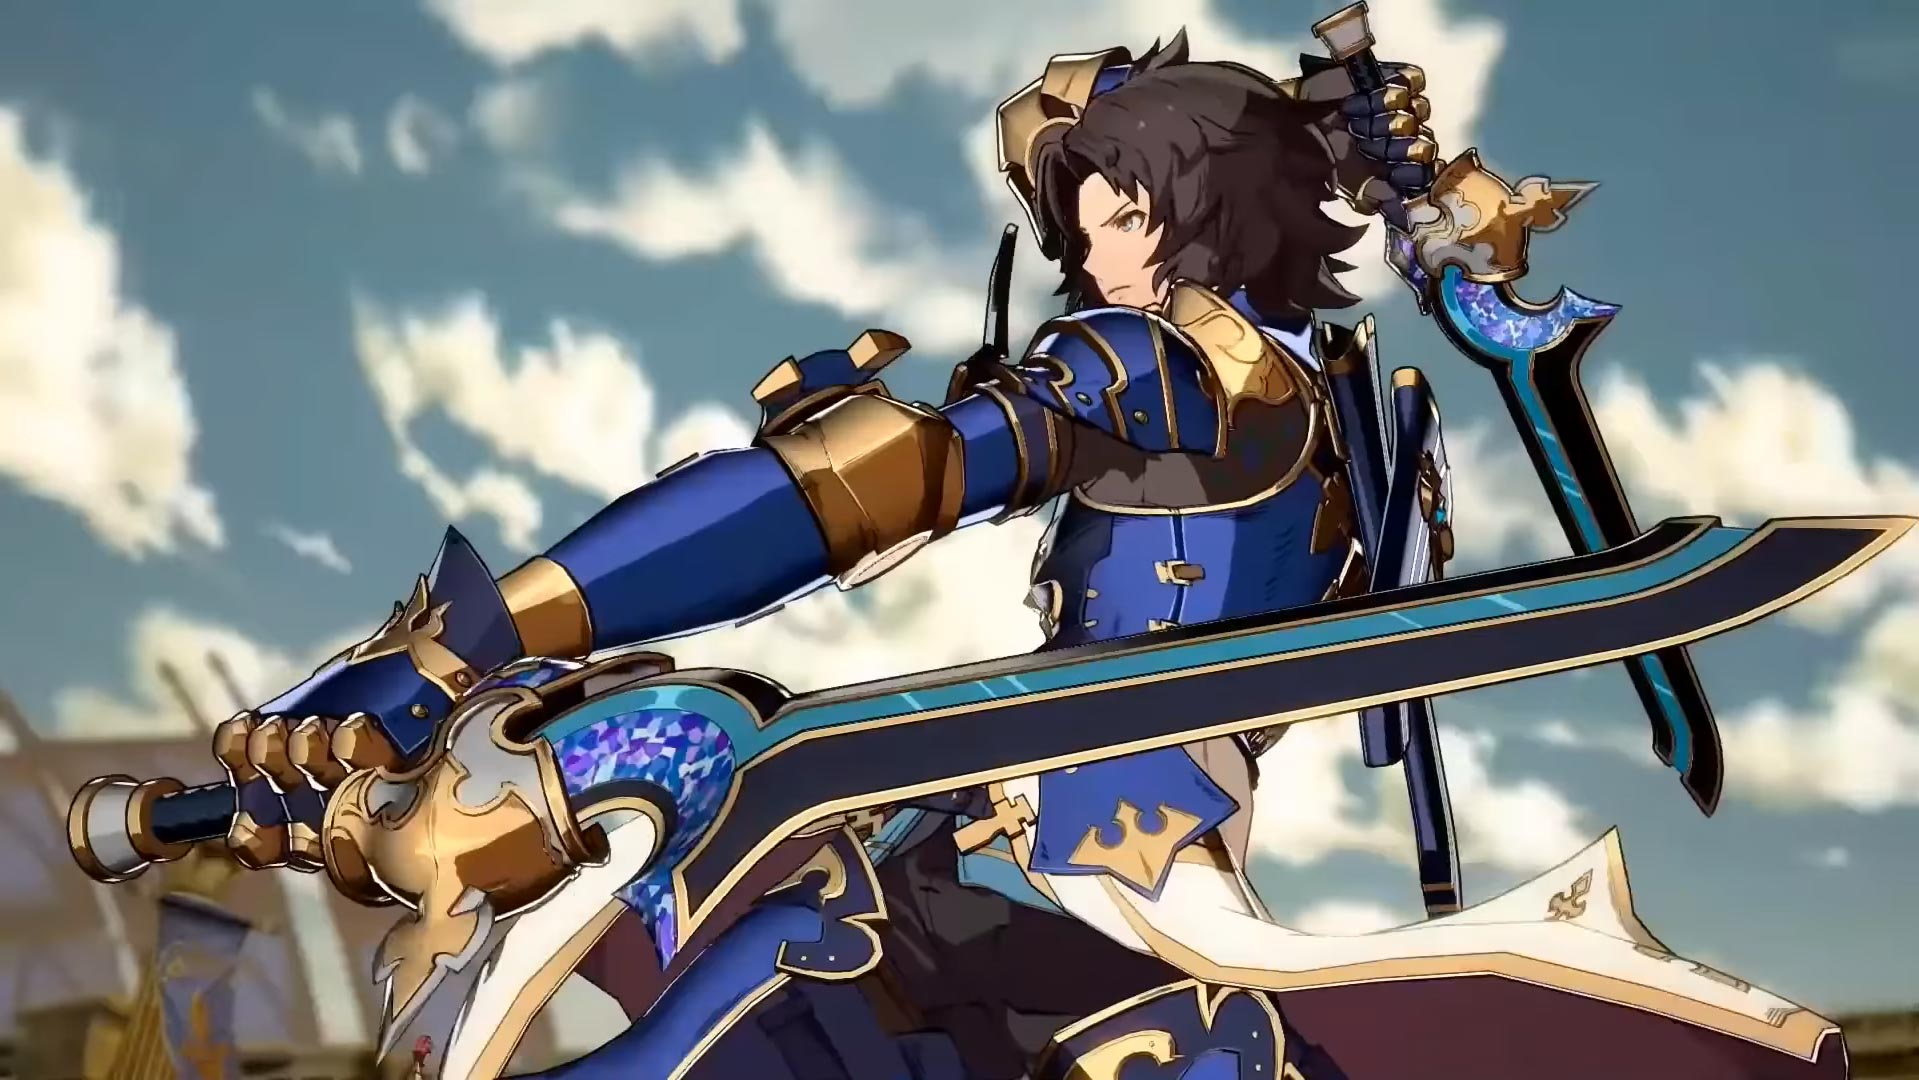 Lancelot and Ferry character trailer for Granblue Fantasy Versus 4 out of 6 image gallery